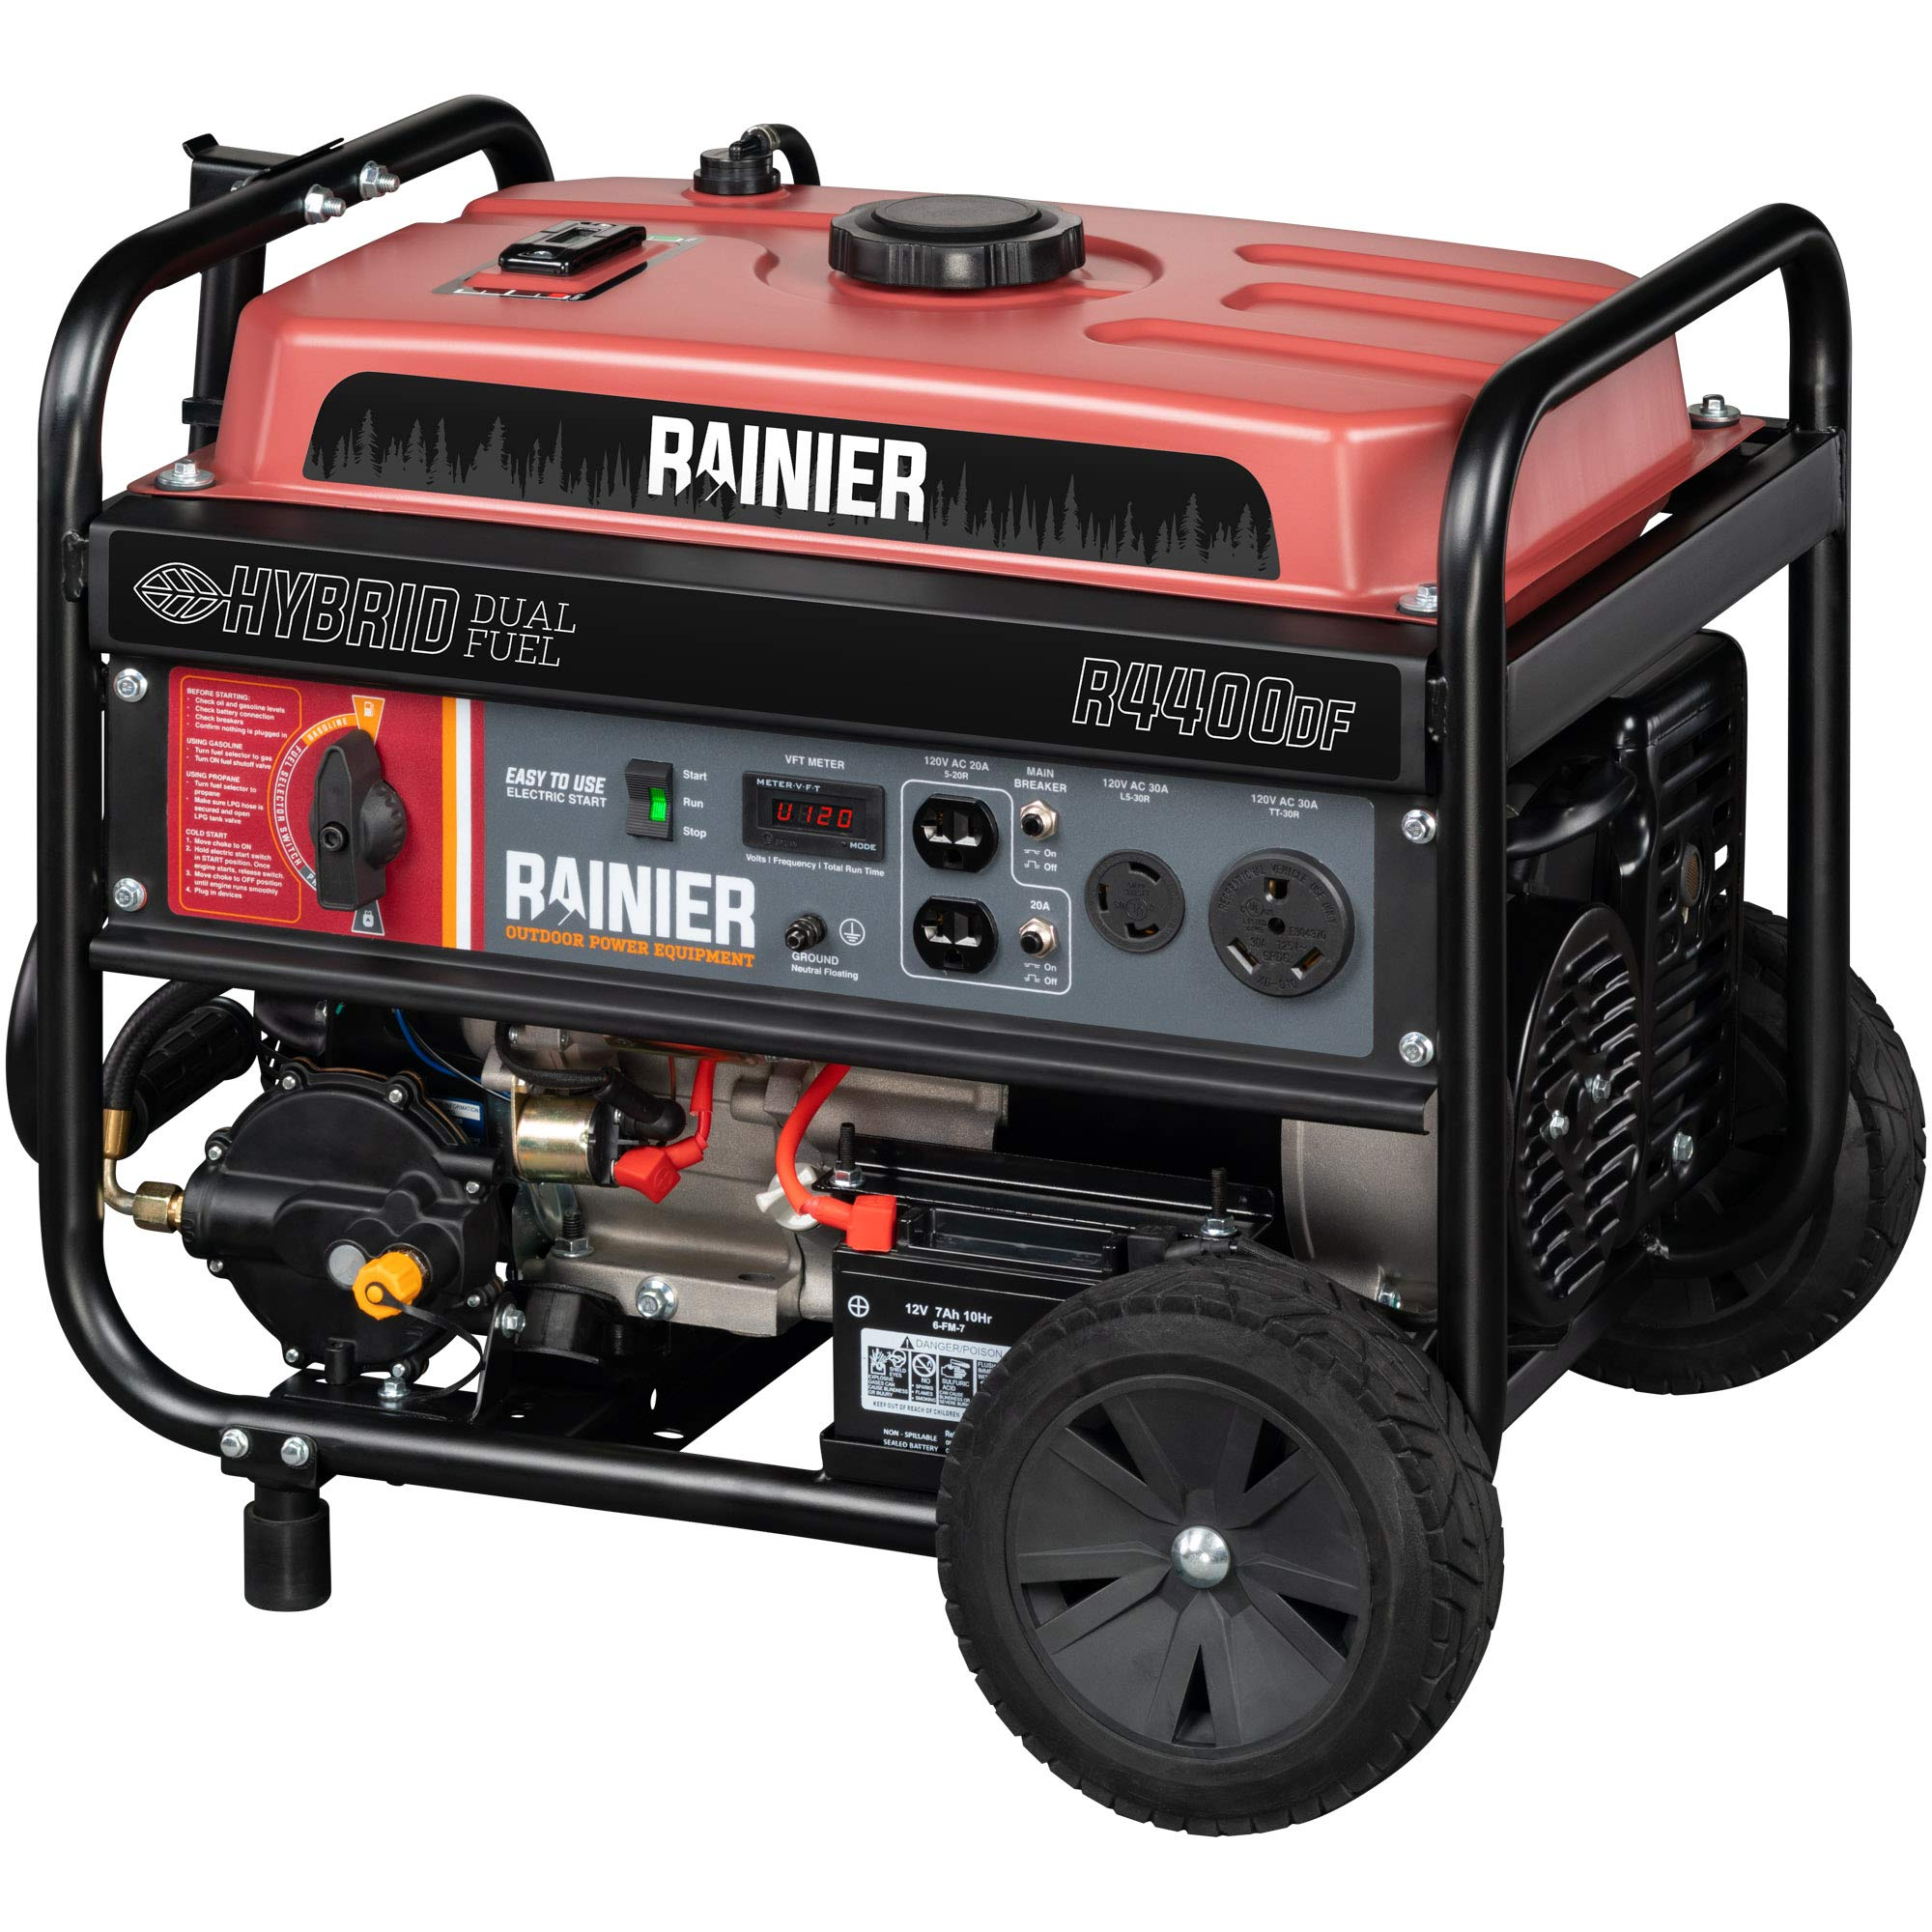 Rainier Portable Generator With Electric Start – CARB Compliant